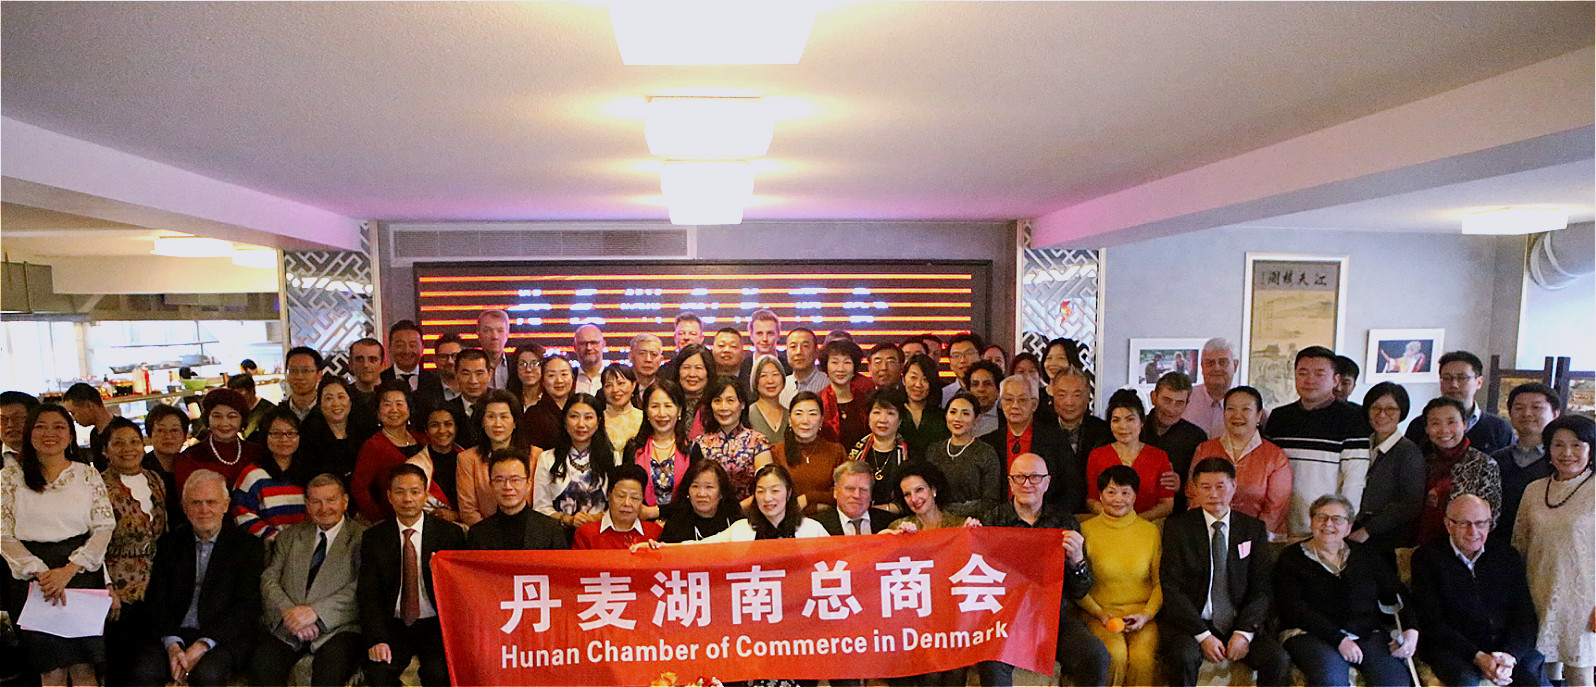 The Opening Ceremony of the Hunan Chamber of Commerce in Denmark and the Danish Hunanese Association